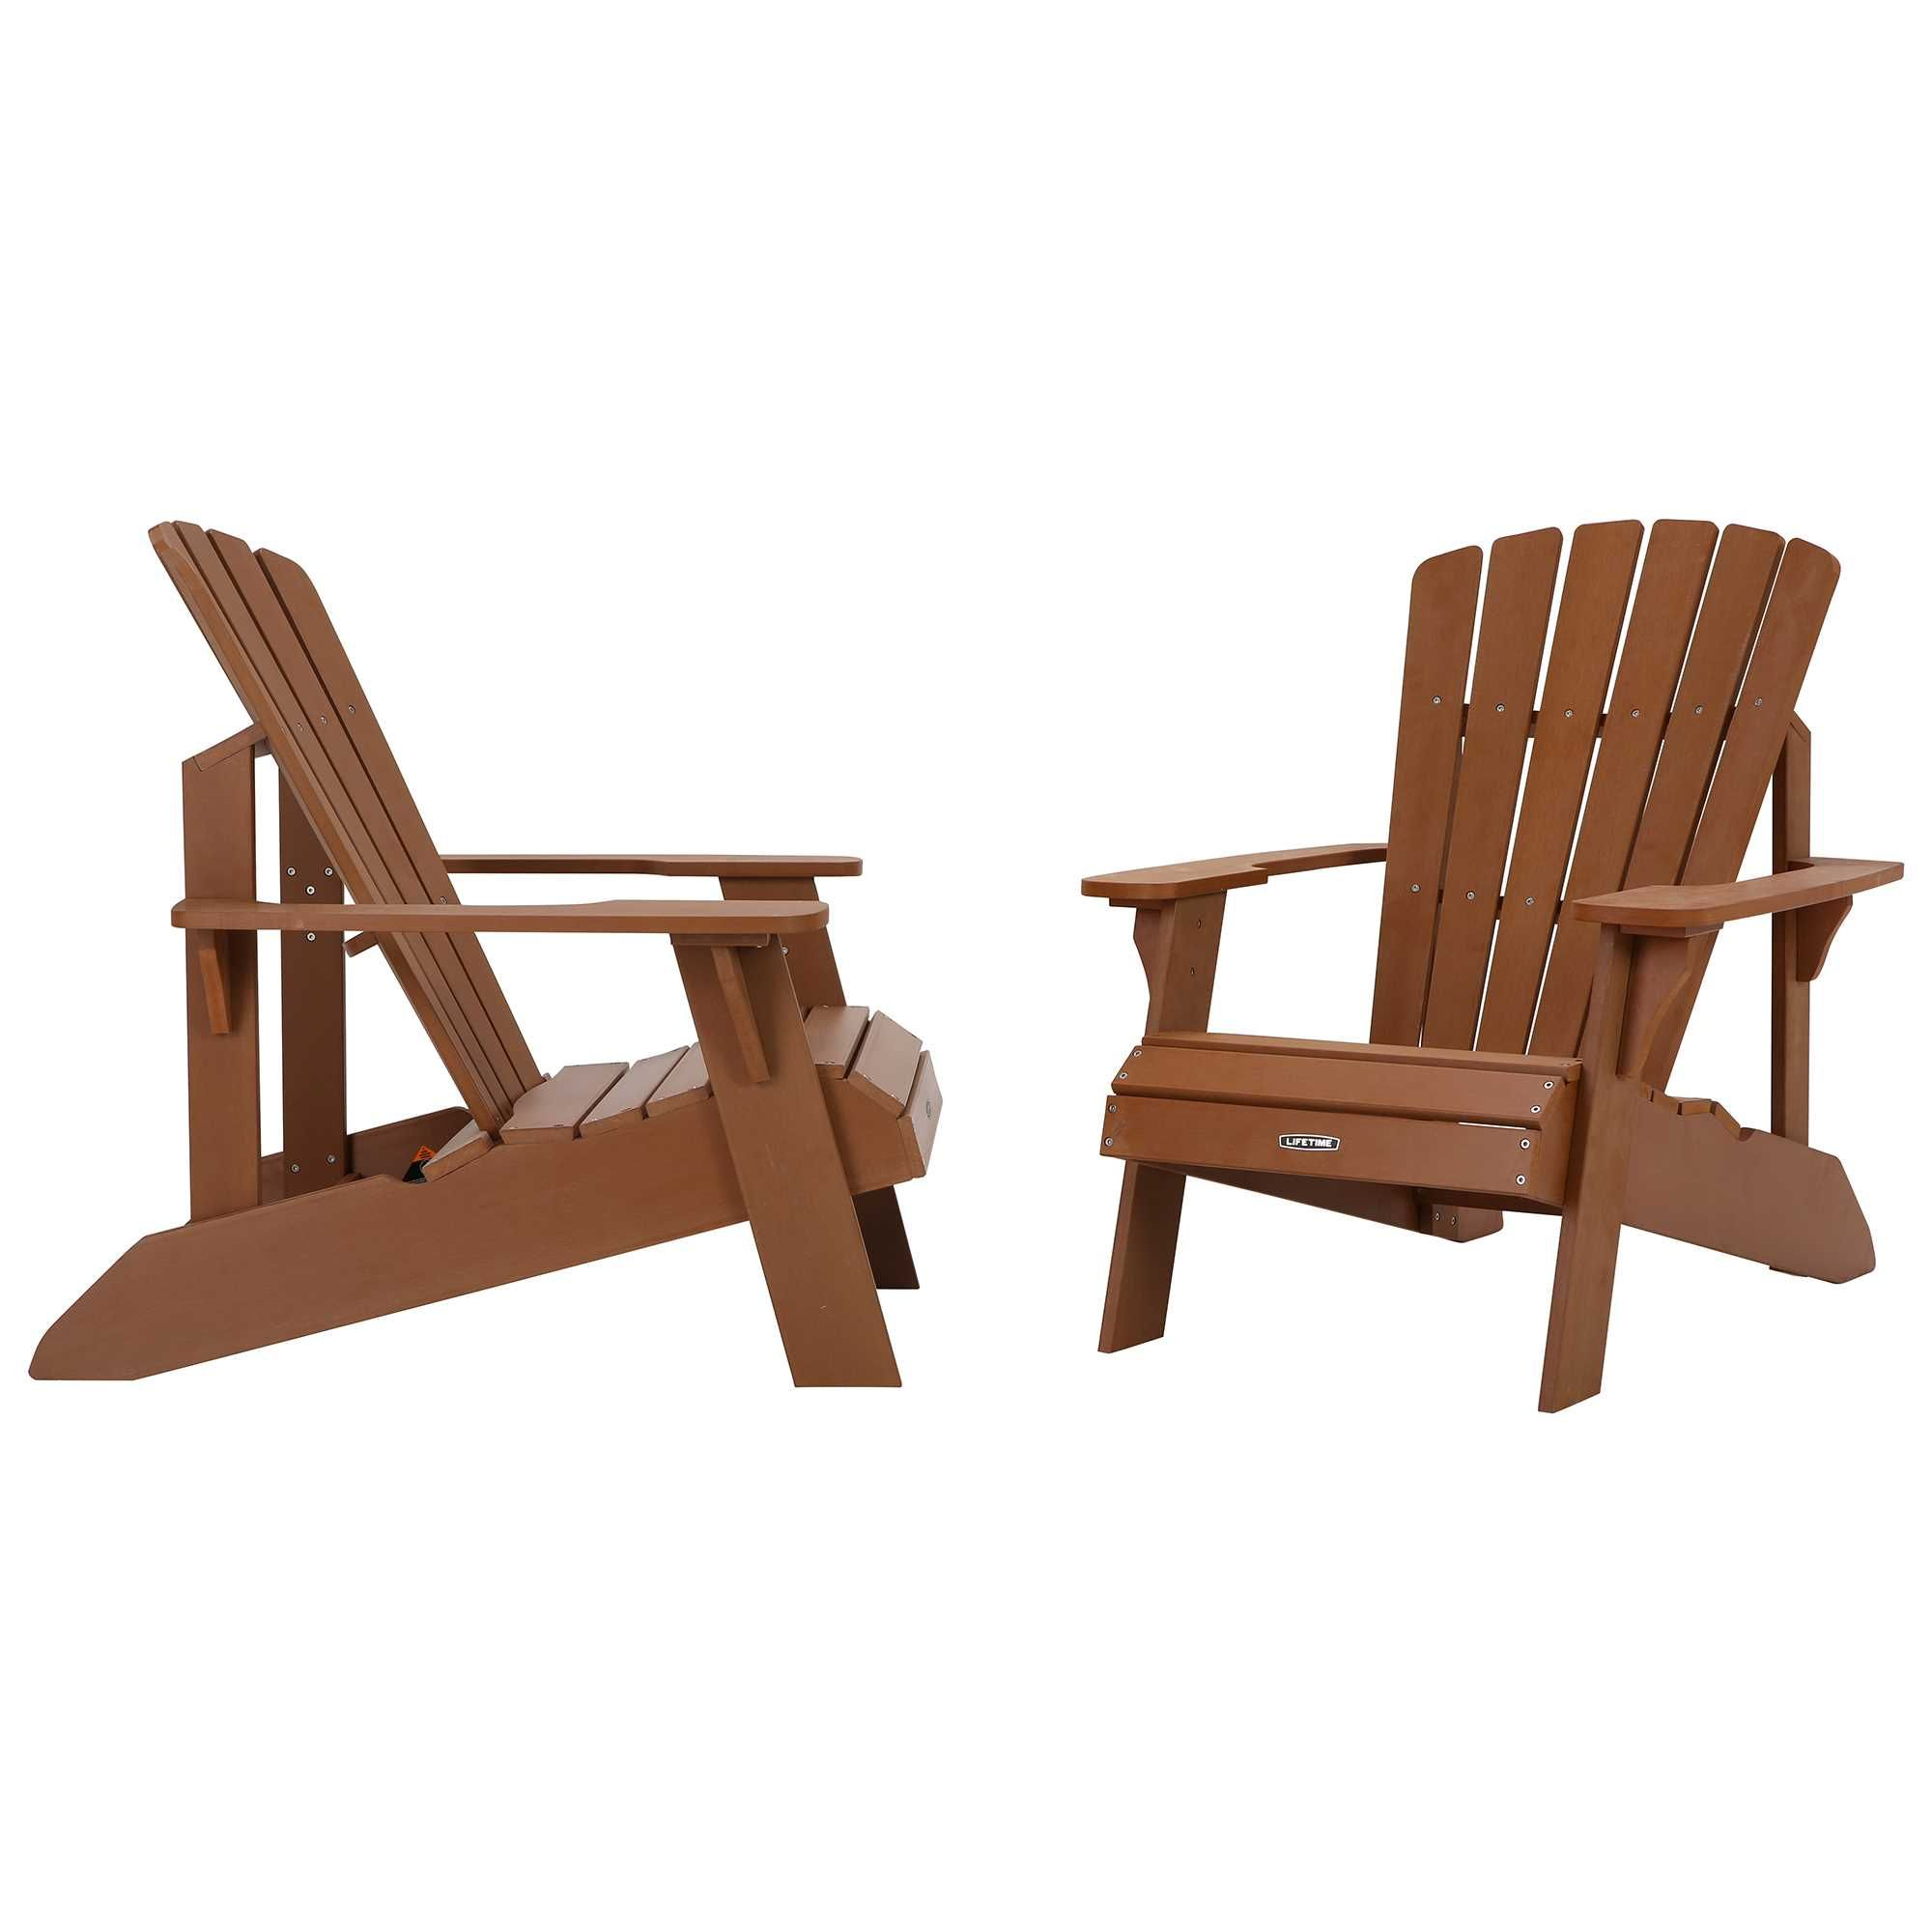 Lifetime Adirondack Chair Heavy Duty Plastic Adirondack Chairs